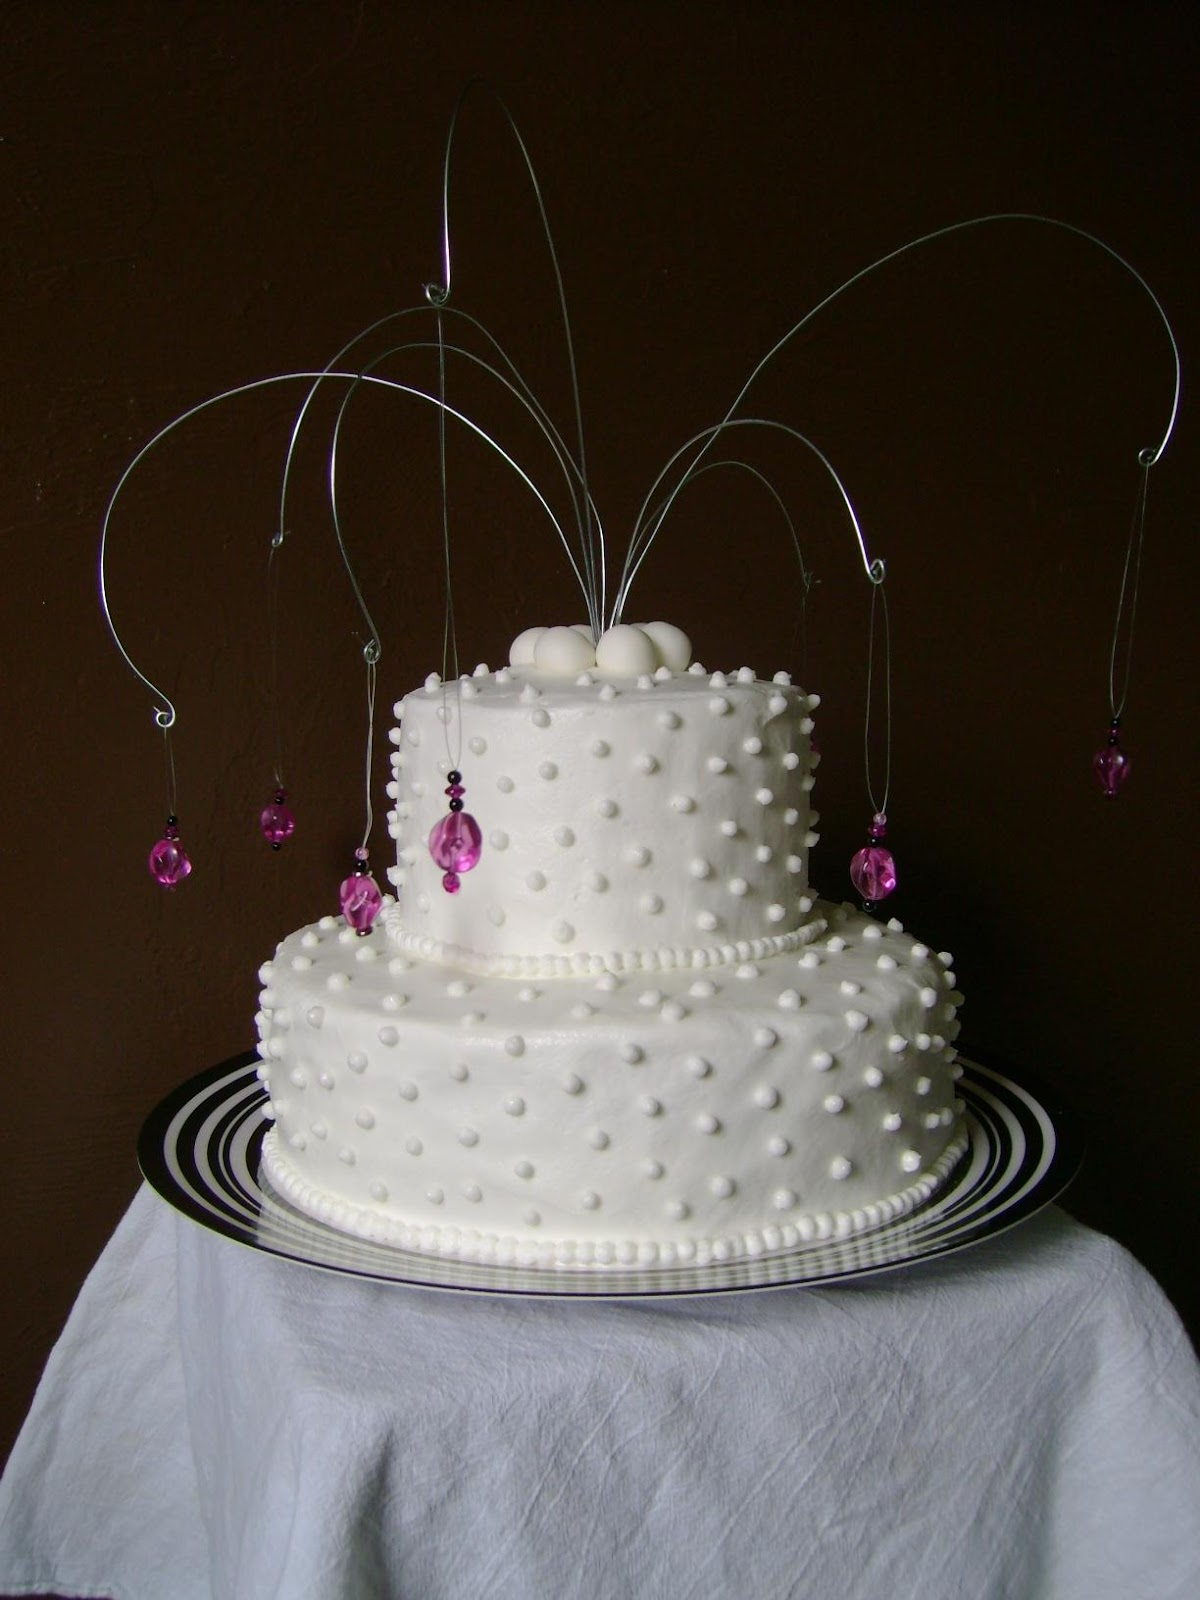 The two-tier cake was a